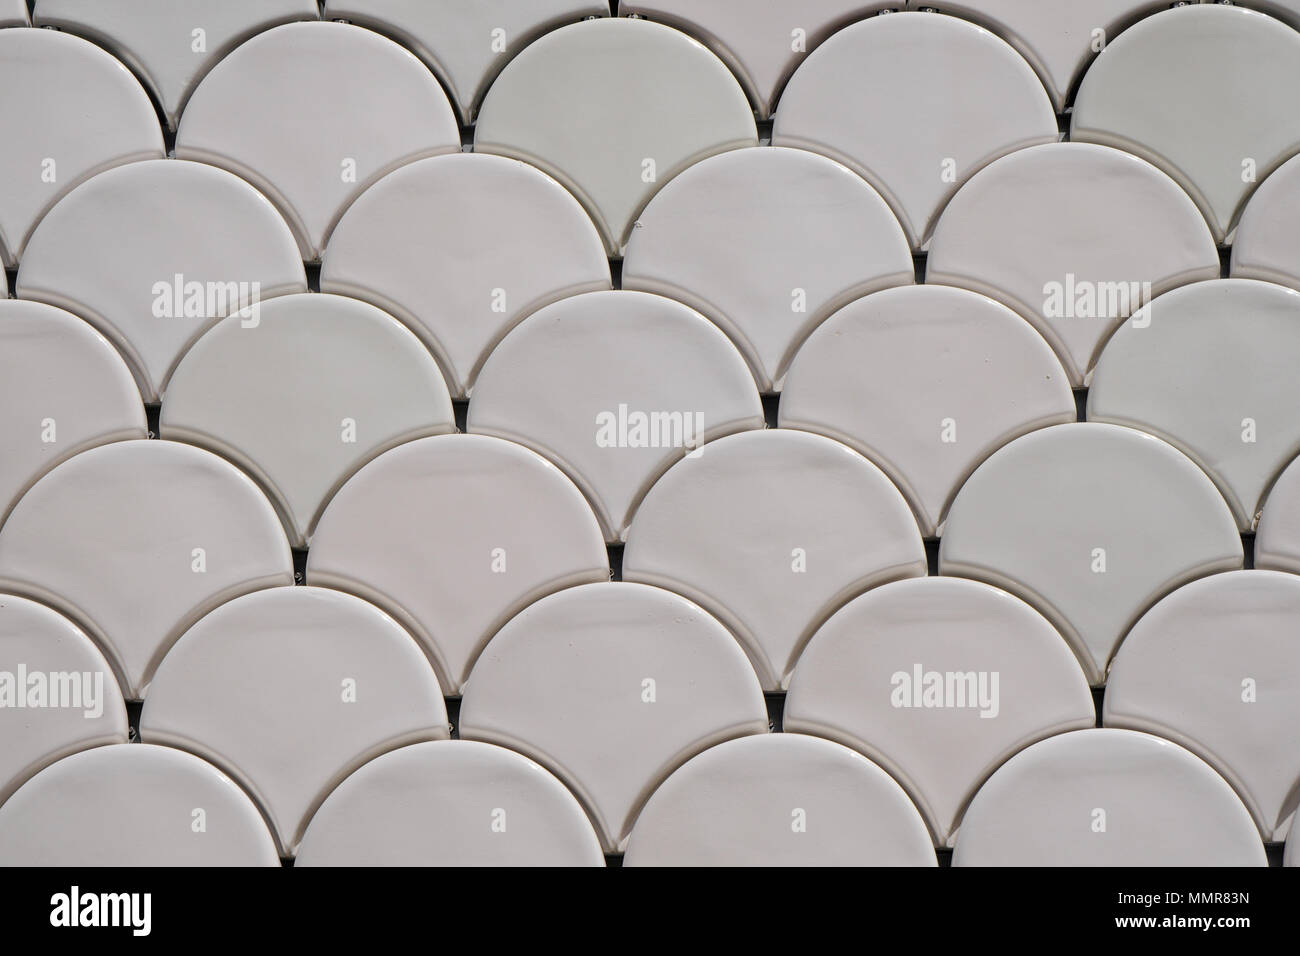 Tiles shaped like fish scales, Lisbon Oceanarium admittance building, Park of the Nations district, Portugal - Stock Image